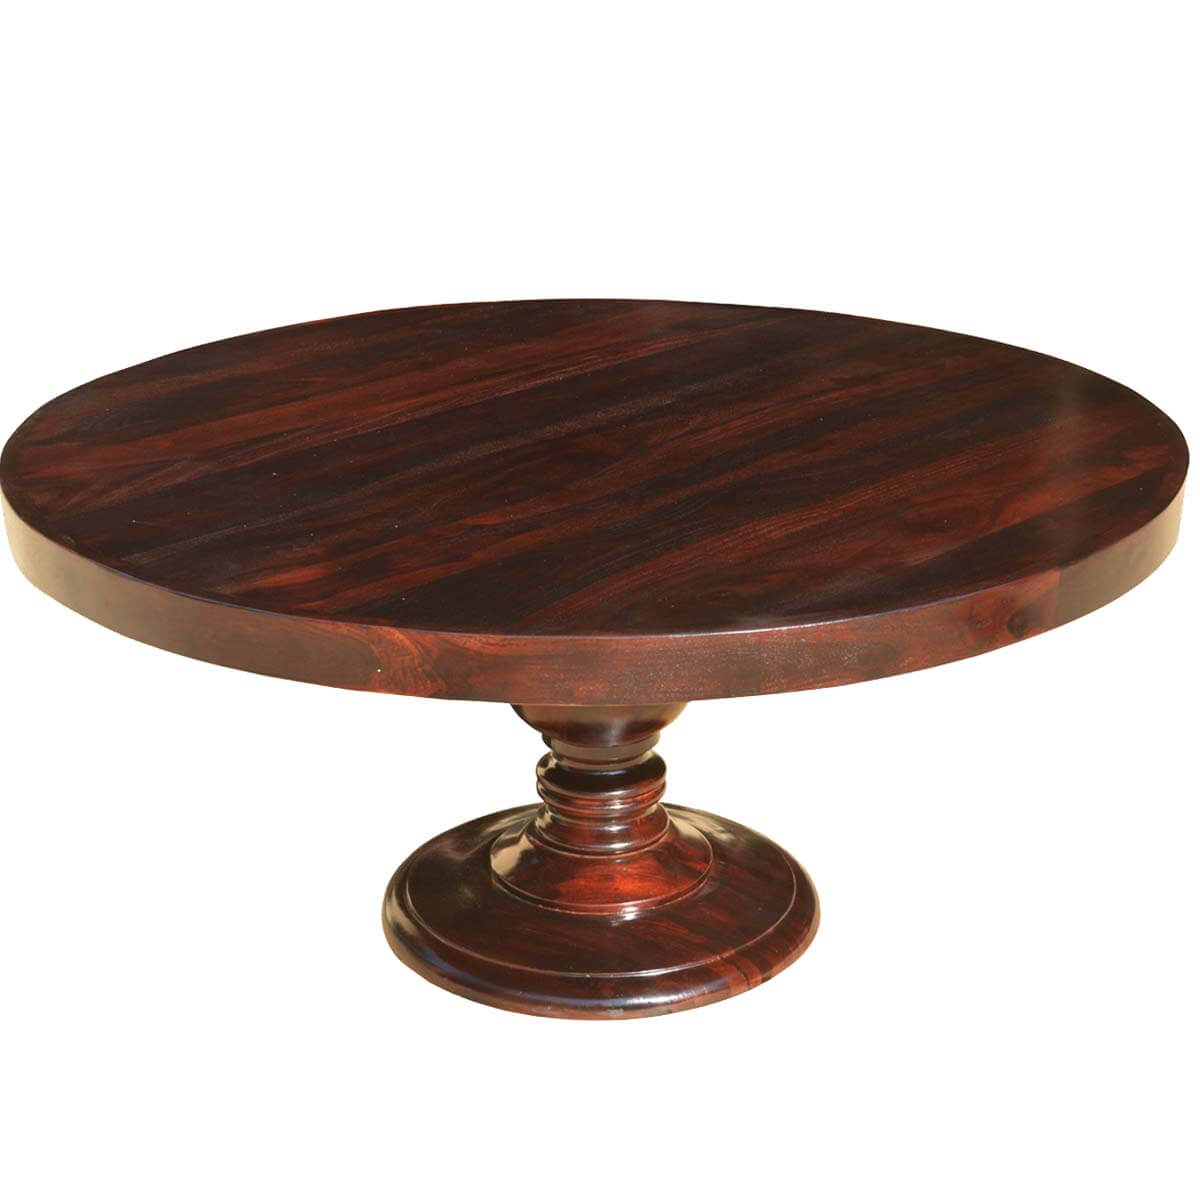 Colonial American Solid Wood Pedestal 72 Round Dining Table